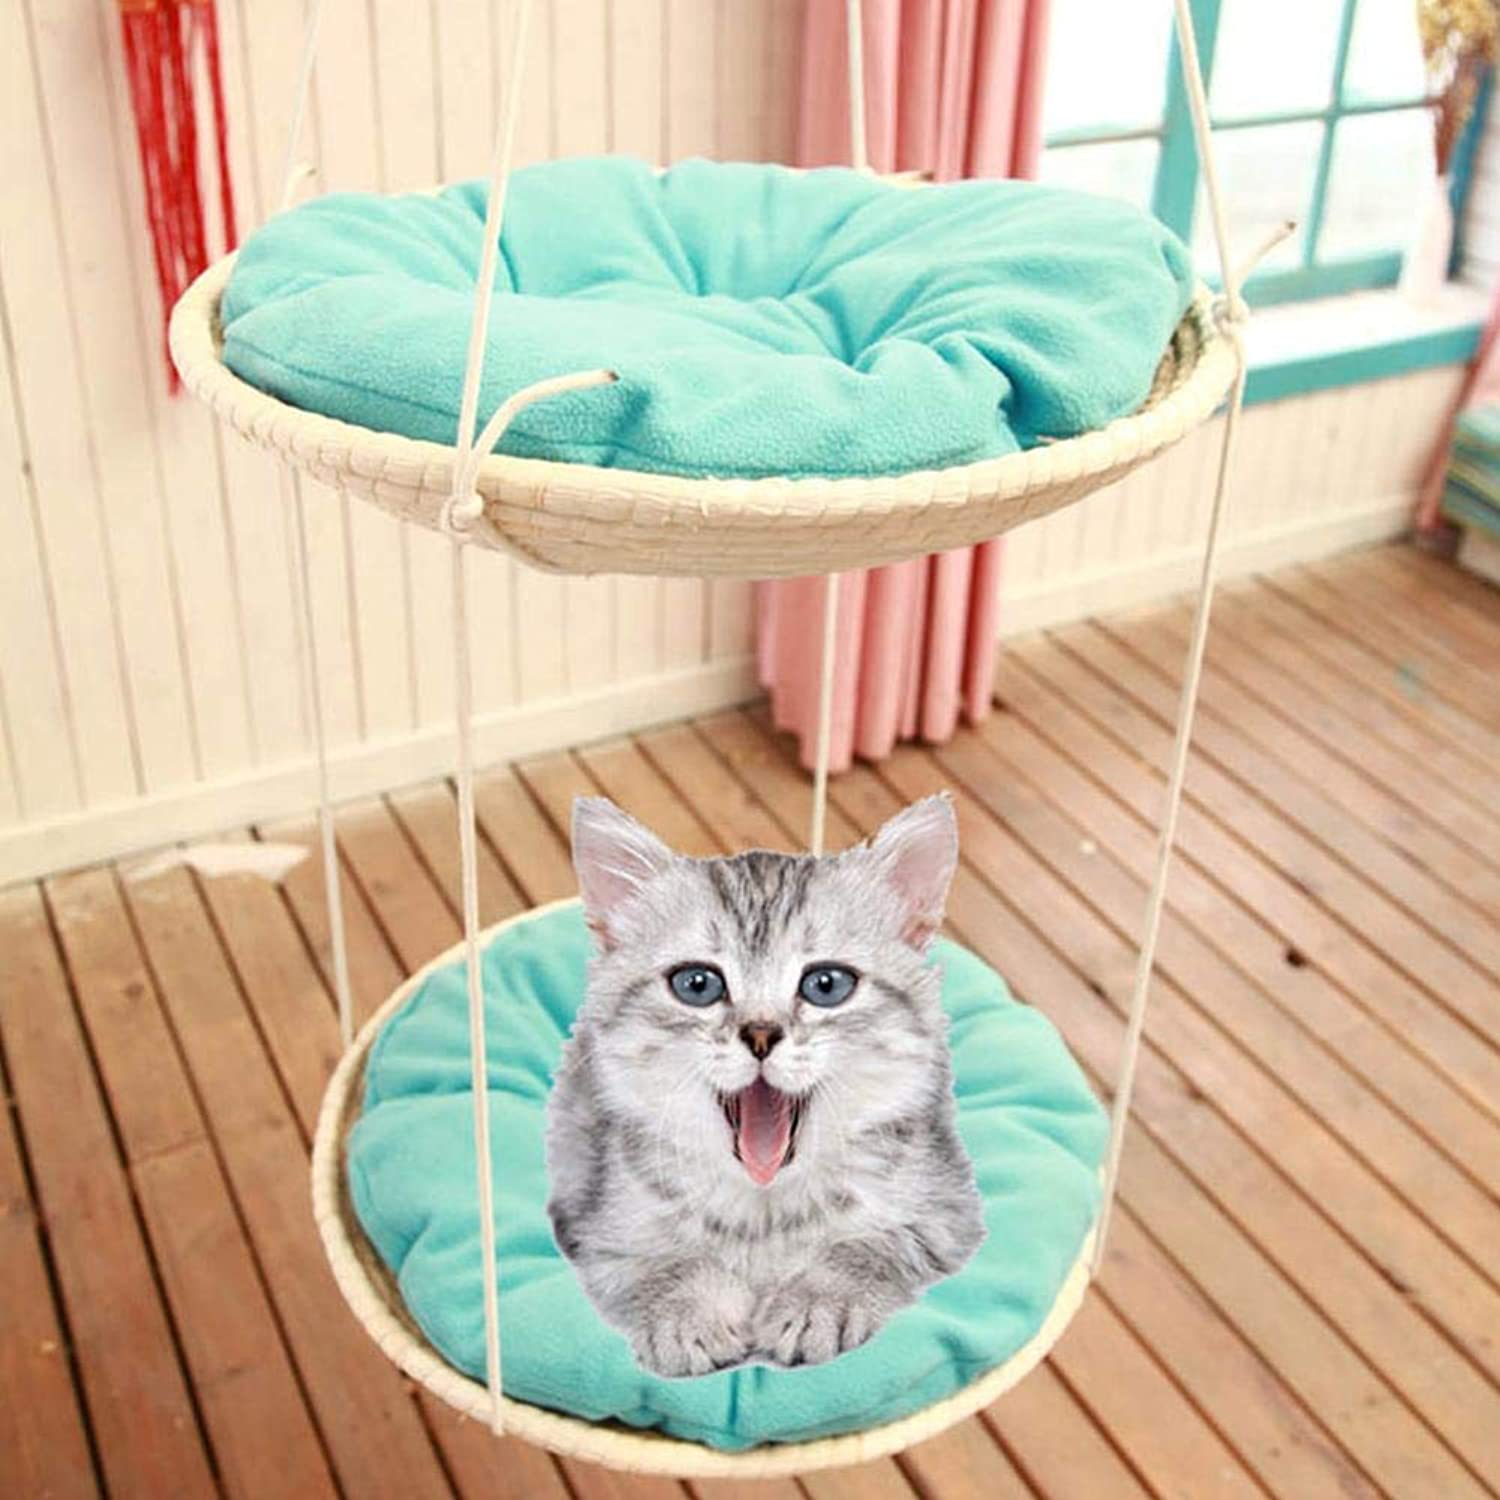 Cat Straw Climbing Bed Hammock Bed with Cushion Soft Hanging Pet Bed for Kitty Perch  Natural Bowl Shaped Corrugated Cradle Removable Cat Tree for Indoor Window Patio Outdoor Garden